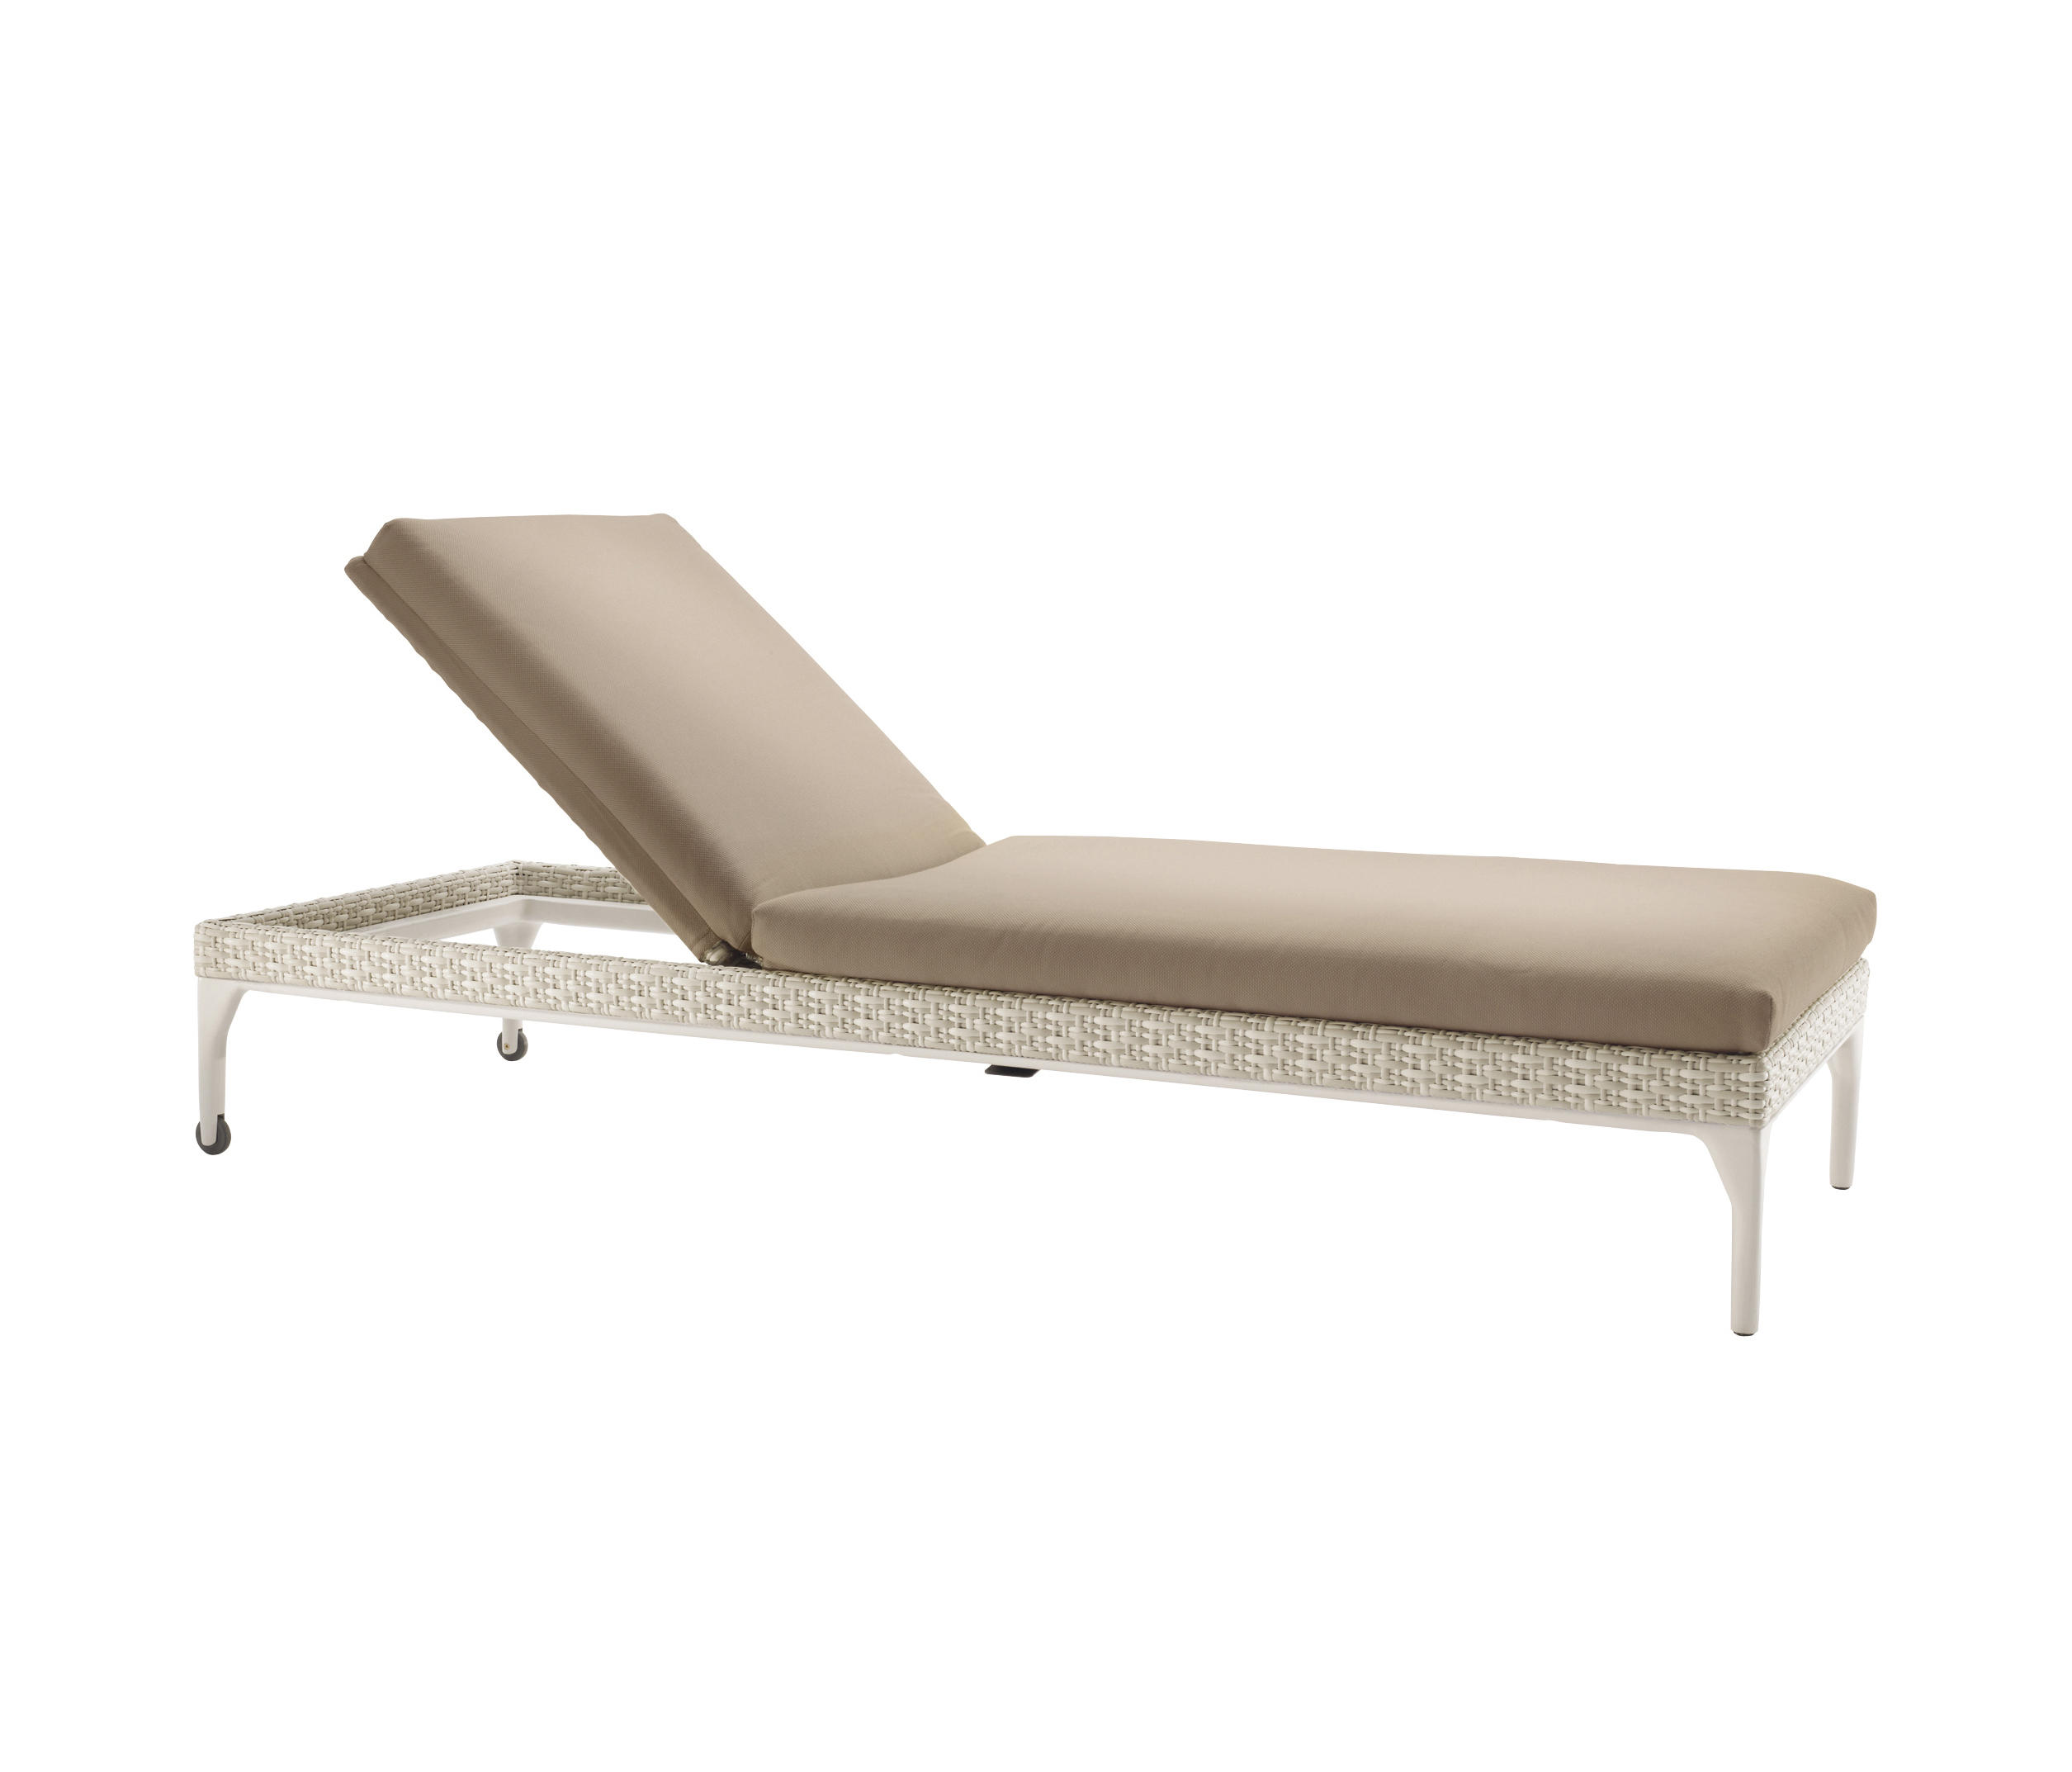 Mu beach chair sun loungers from dedon architonic for Chaise longue salon